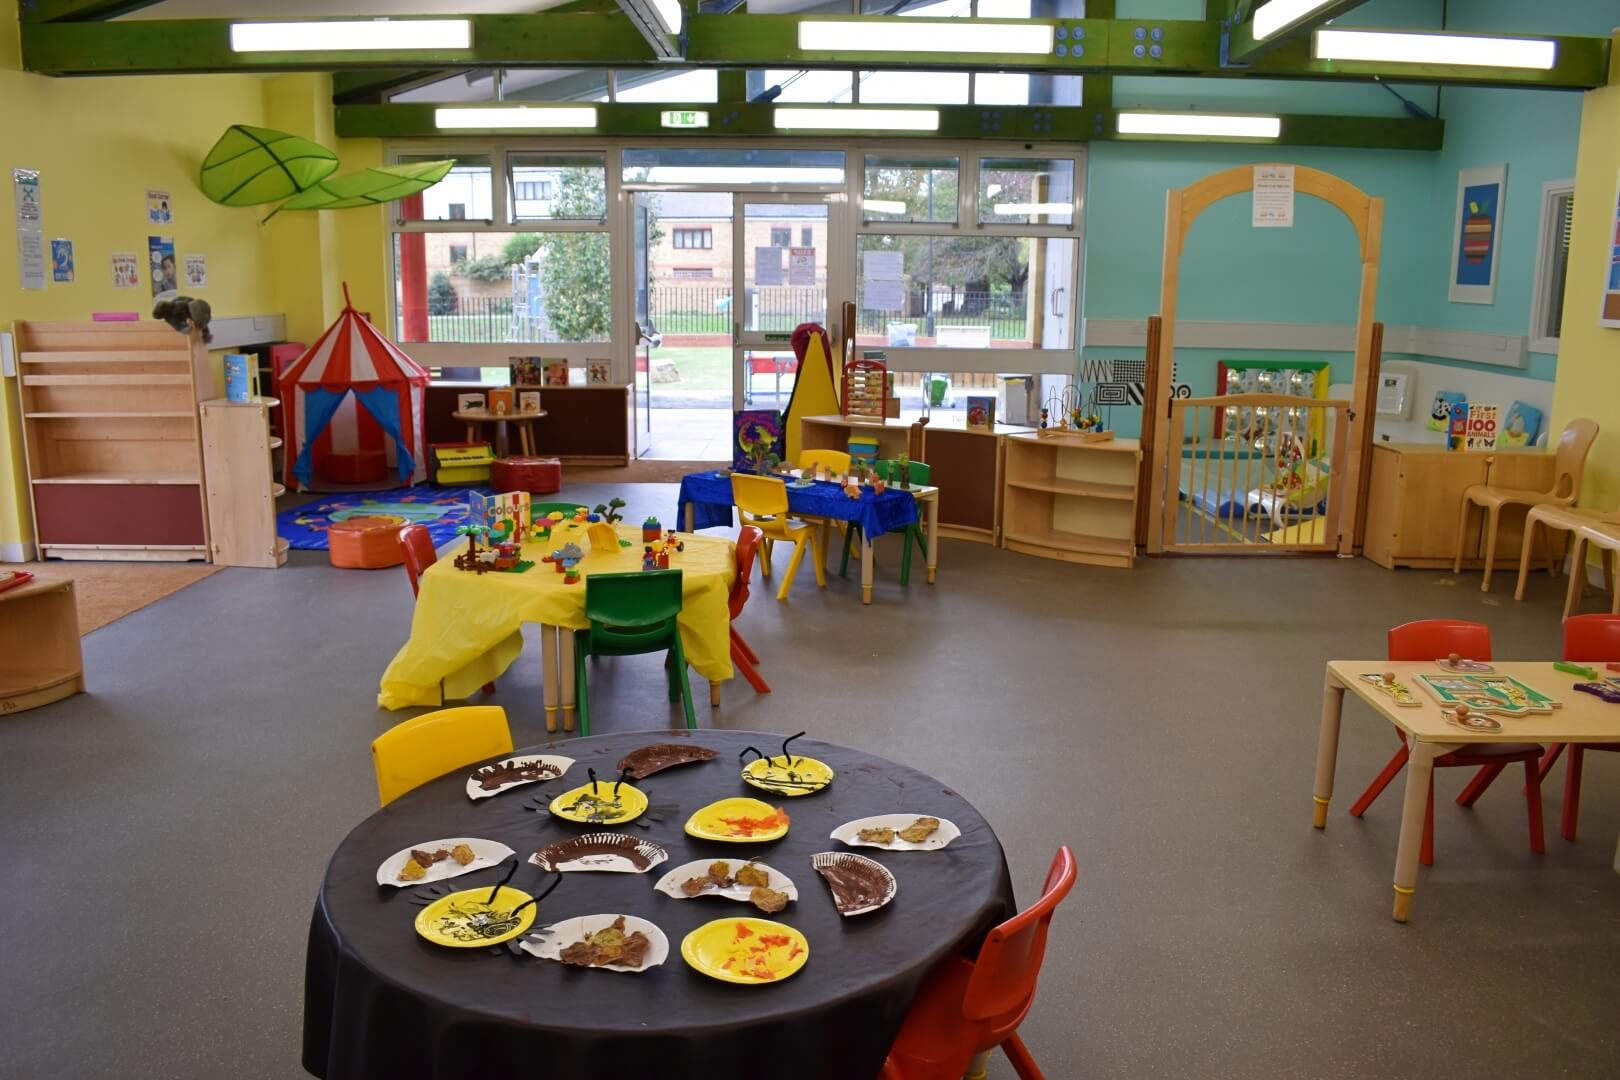 Rays Playhouse Childrens Centre Sands End Fulham (20)